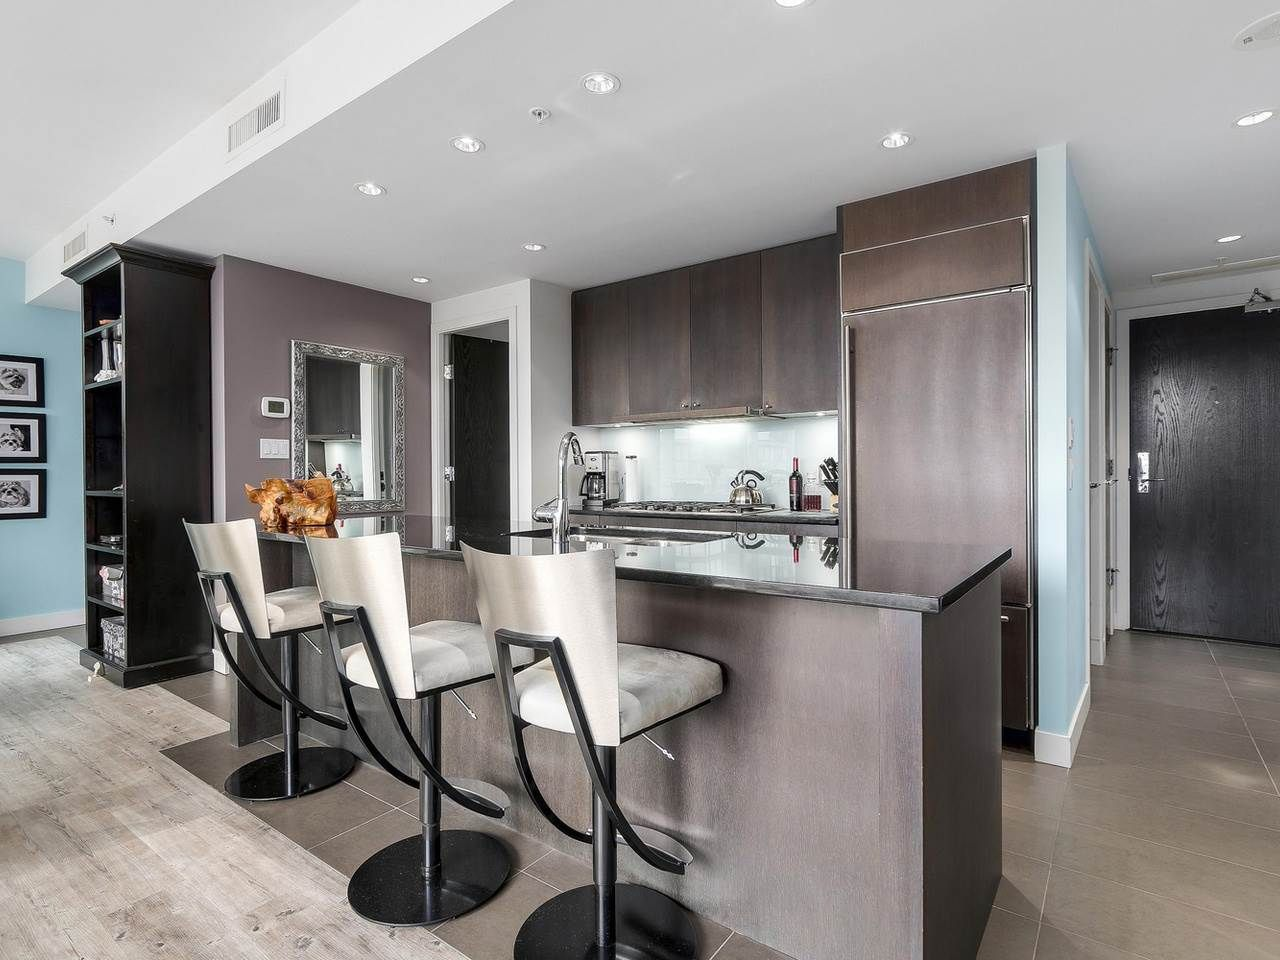 Photo 6: Photos: 401 1455 HOWE STREET in Vancouver: Yaletown Condo for sale (Vancouver West)  : MLS®# R2145939